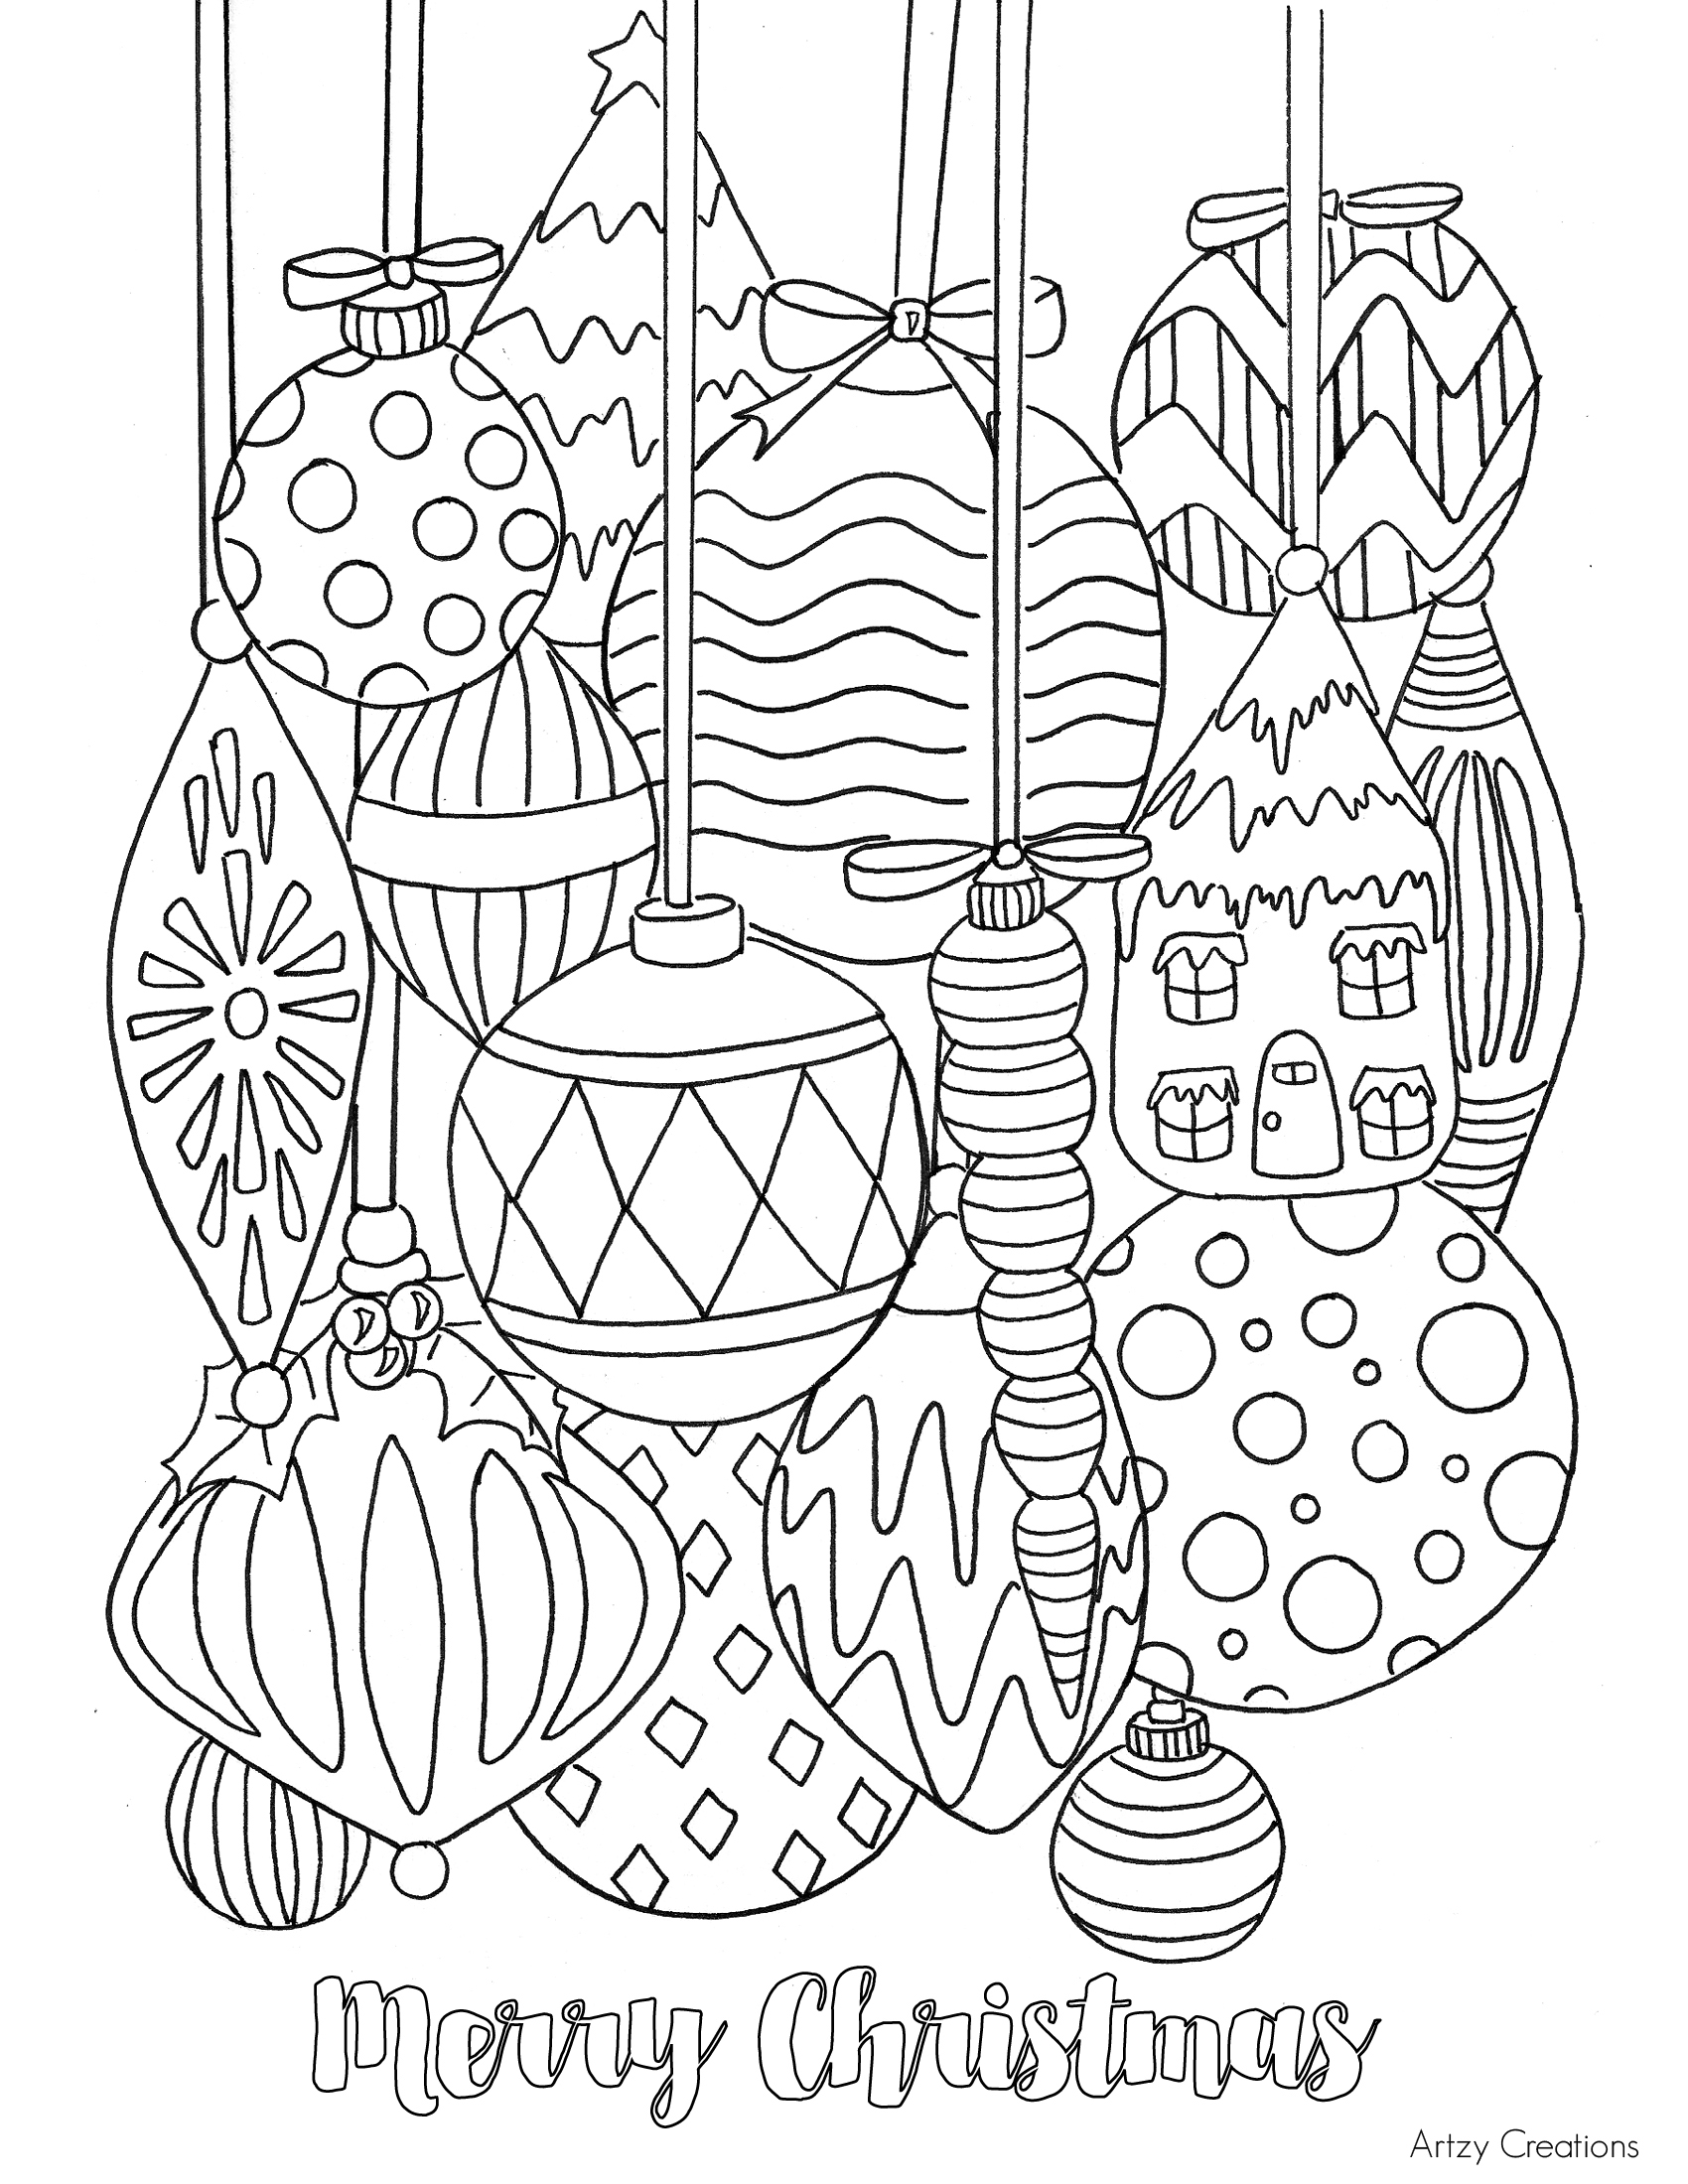 Merry Christmas Teacher Coloring Pages With Free Ornament Page TGIF This Grandma Is Fun